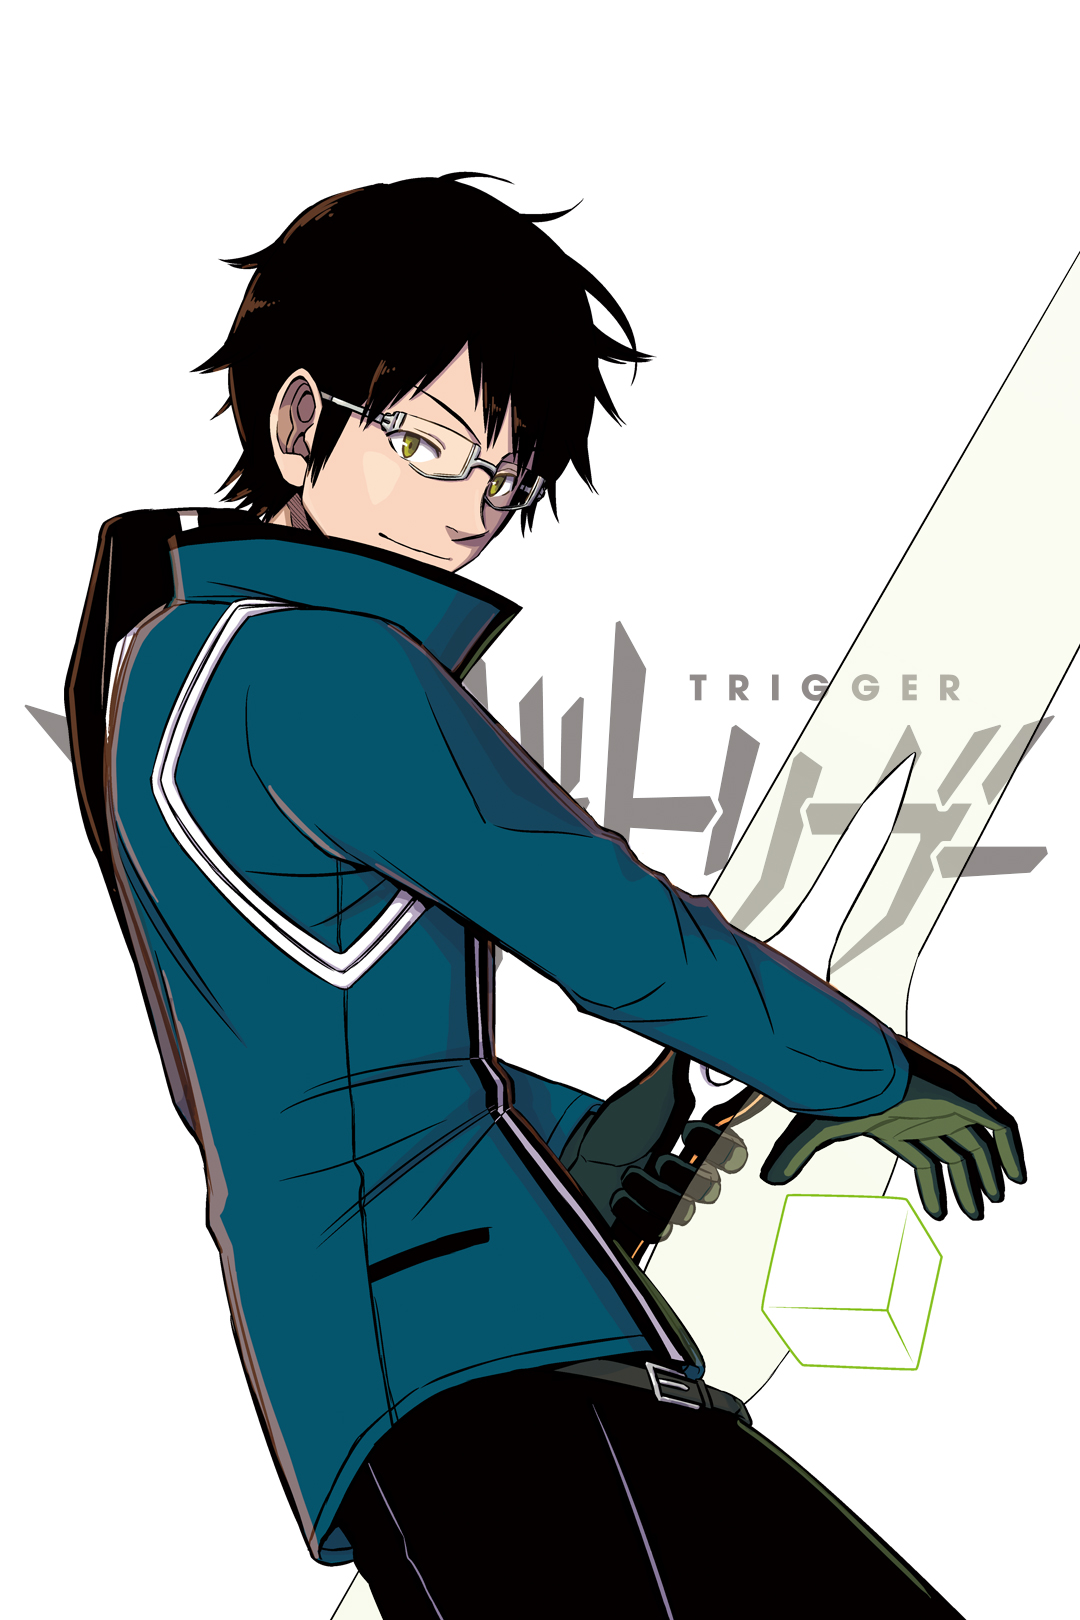 High Resolution Wallpaper | World Trigger 1080x1620 px